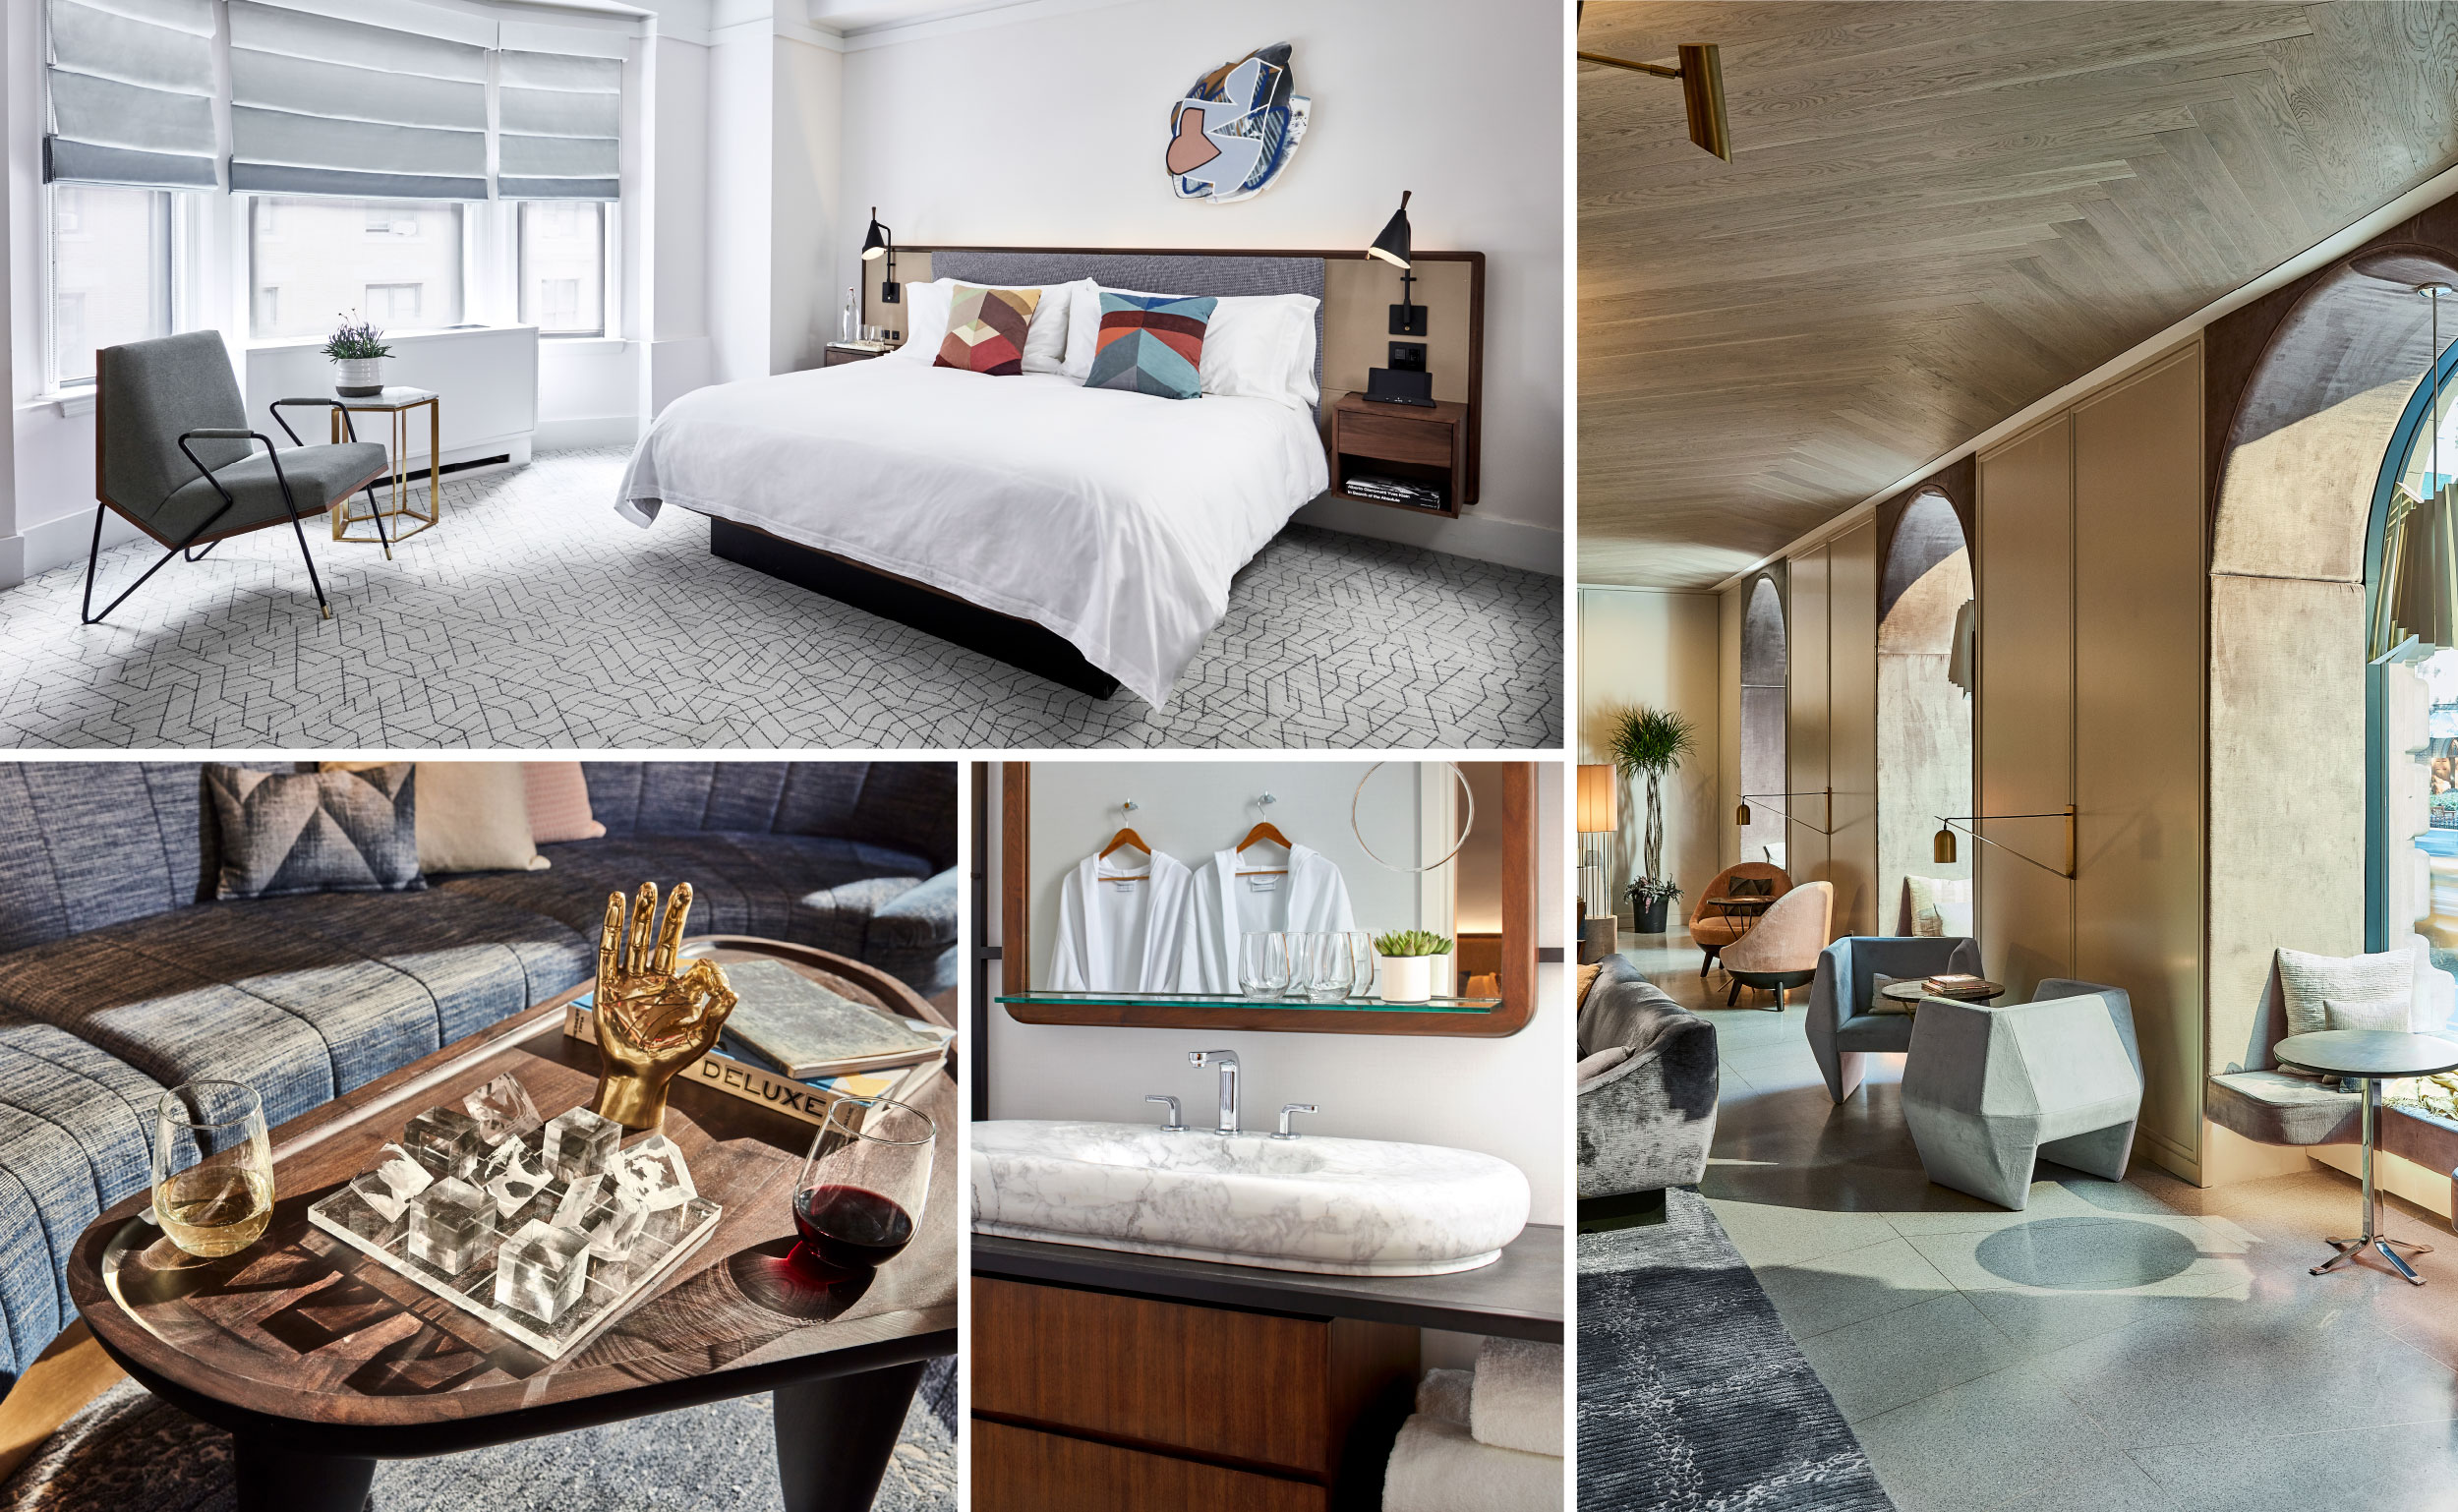 THE JAMES NEW YORK - NOMAD - photos by Gentl & Hyers